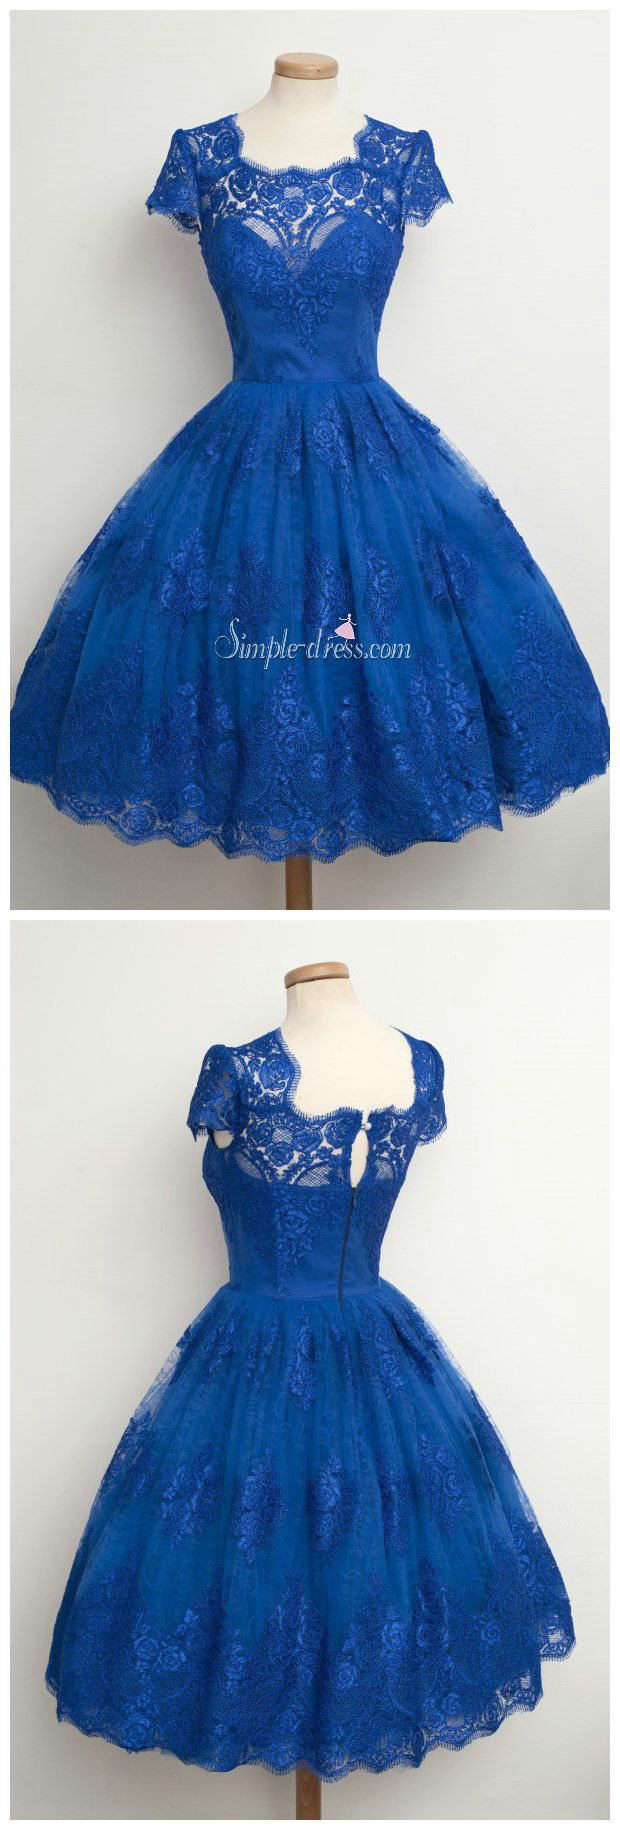 Royal blue dresses on pinterest blue dresses dresses and royal blue